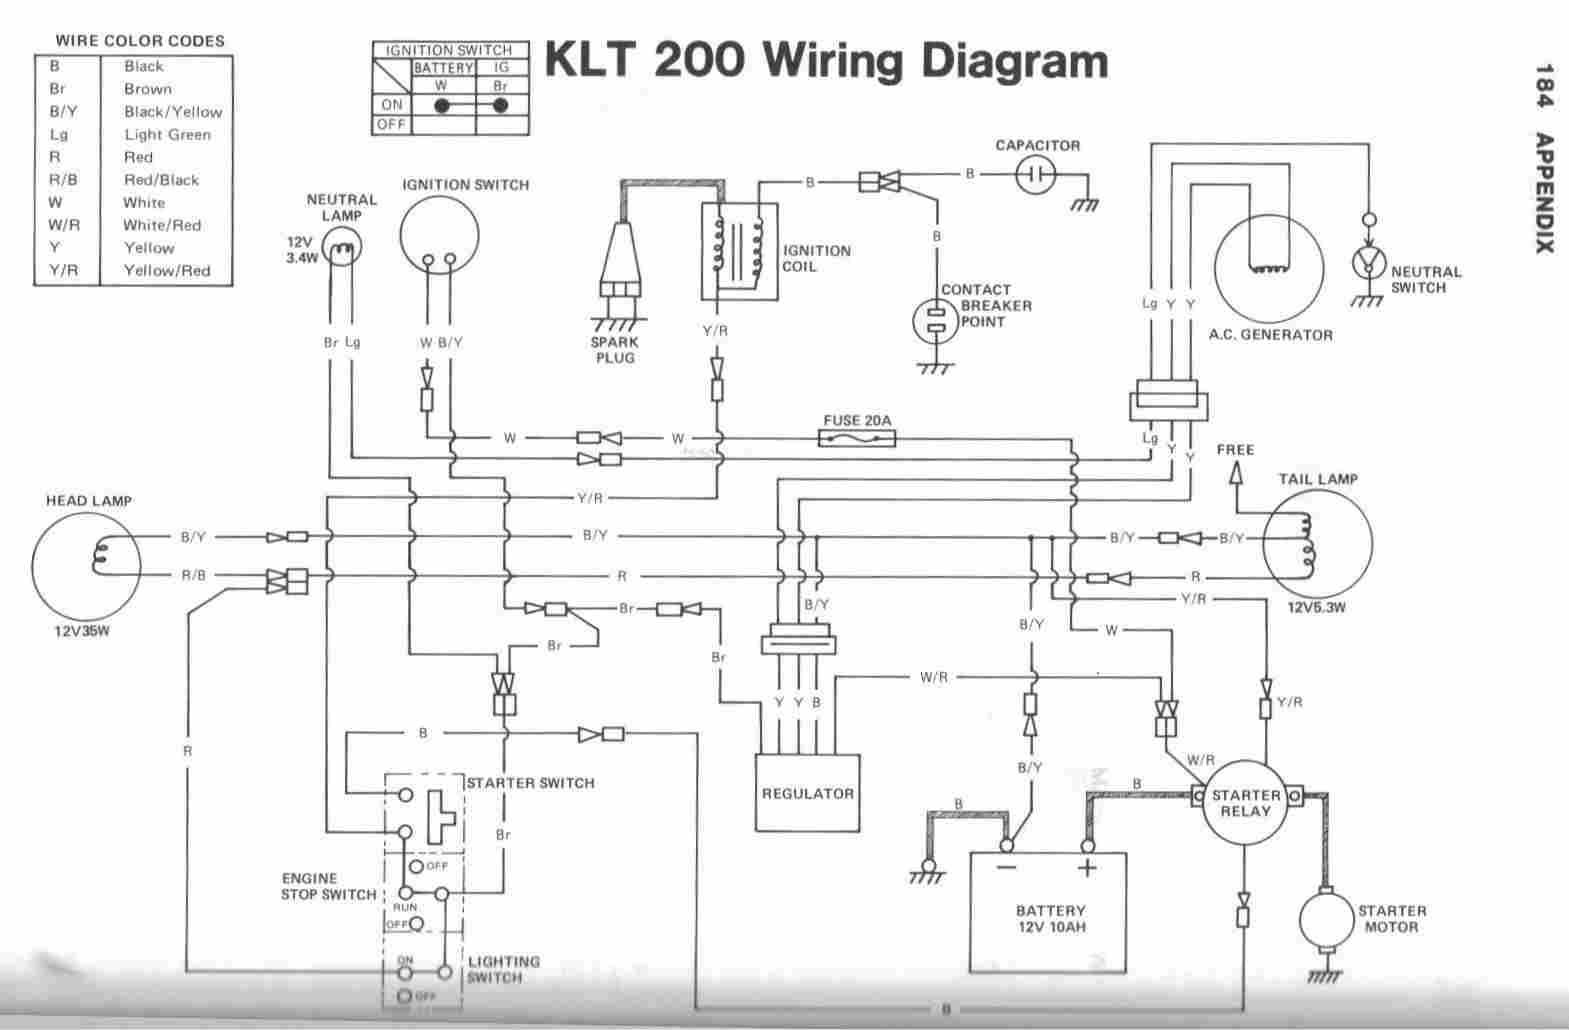 3 wire electrical wiring diagram interconnected smoke alarms uk residential diagrams pdf easy routing